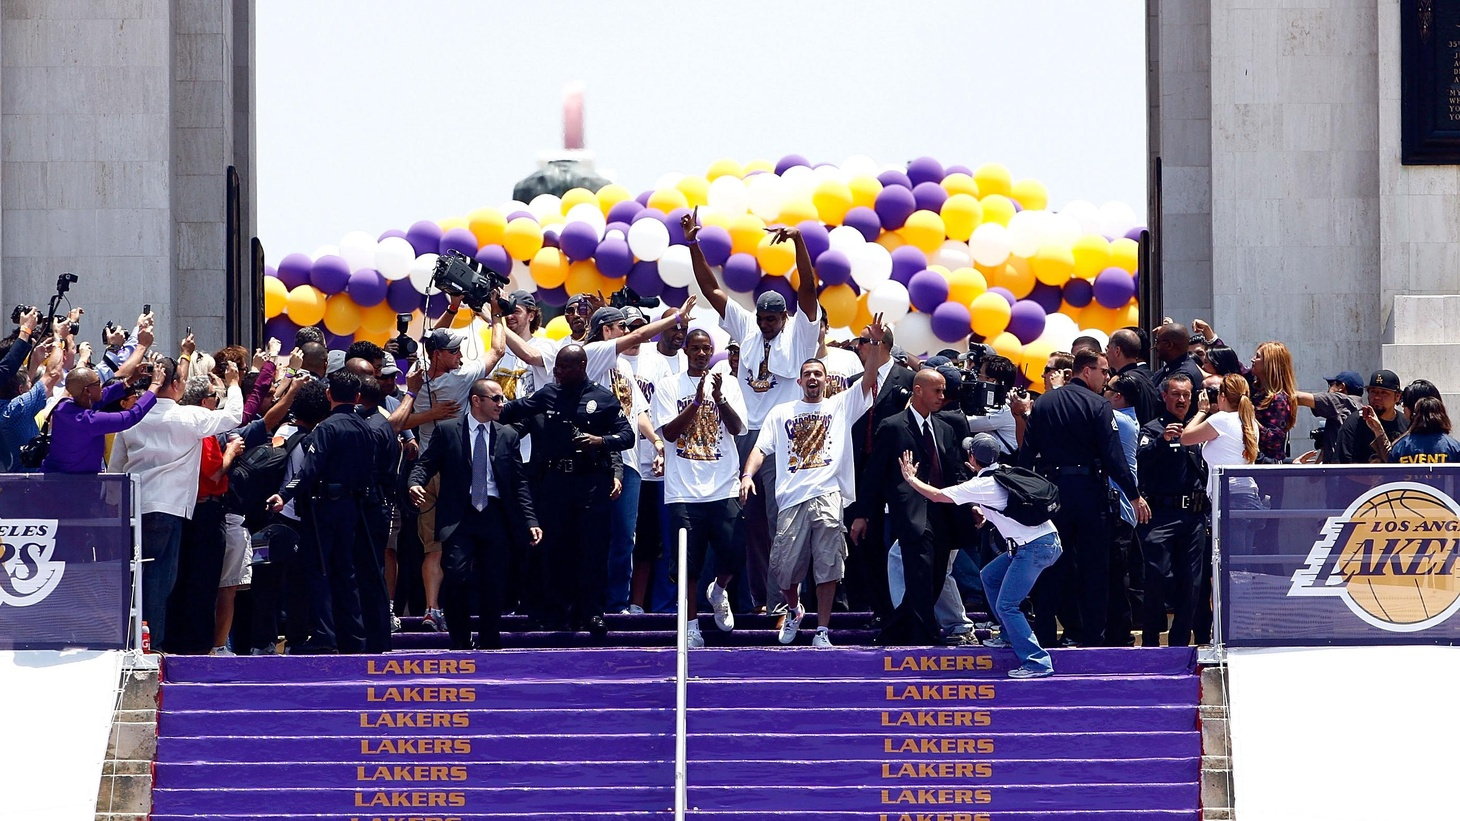 First off, congratulations and all that to the Lakers. They're the one L.A. pro sports team that can be counted on to bring home a championship trophy every now and then. Congratulations also to Los Angeles for taking the Lakers title mostly